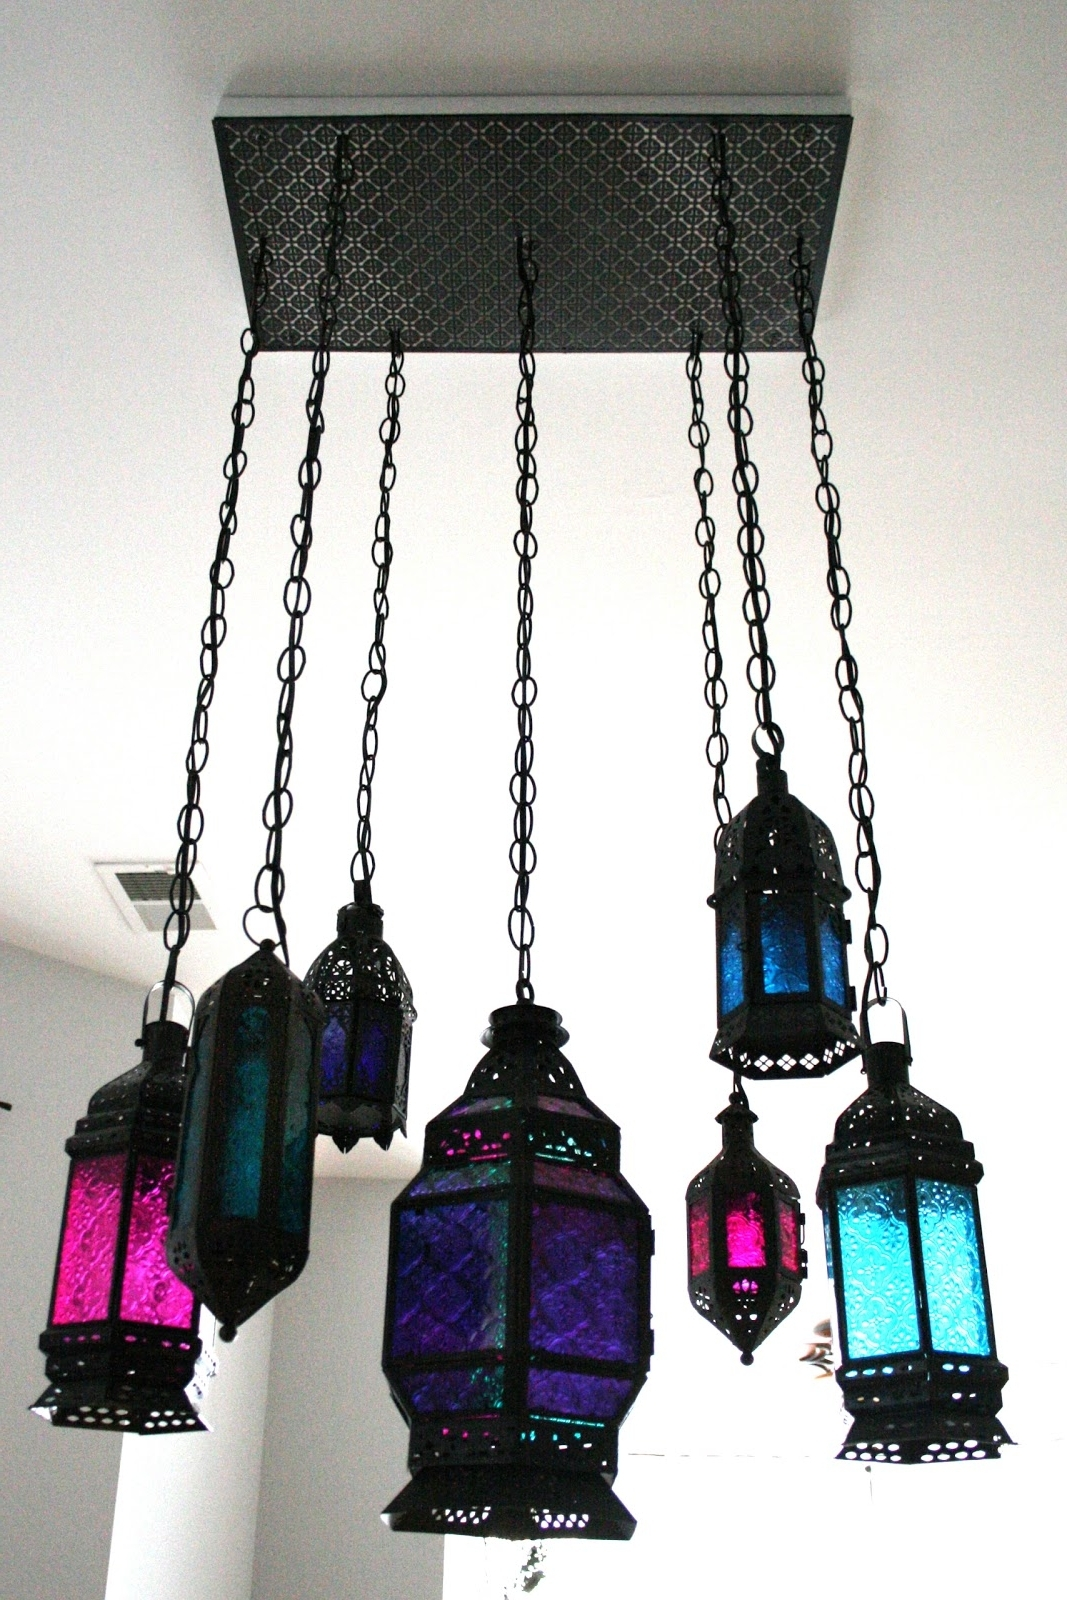 Turquoise Lantern Chandeliers Pertaining To Fashionable Indie Fashion And Beauty: Diy Moroccan Lantern Chandelier (View 14 of 15)